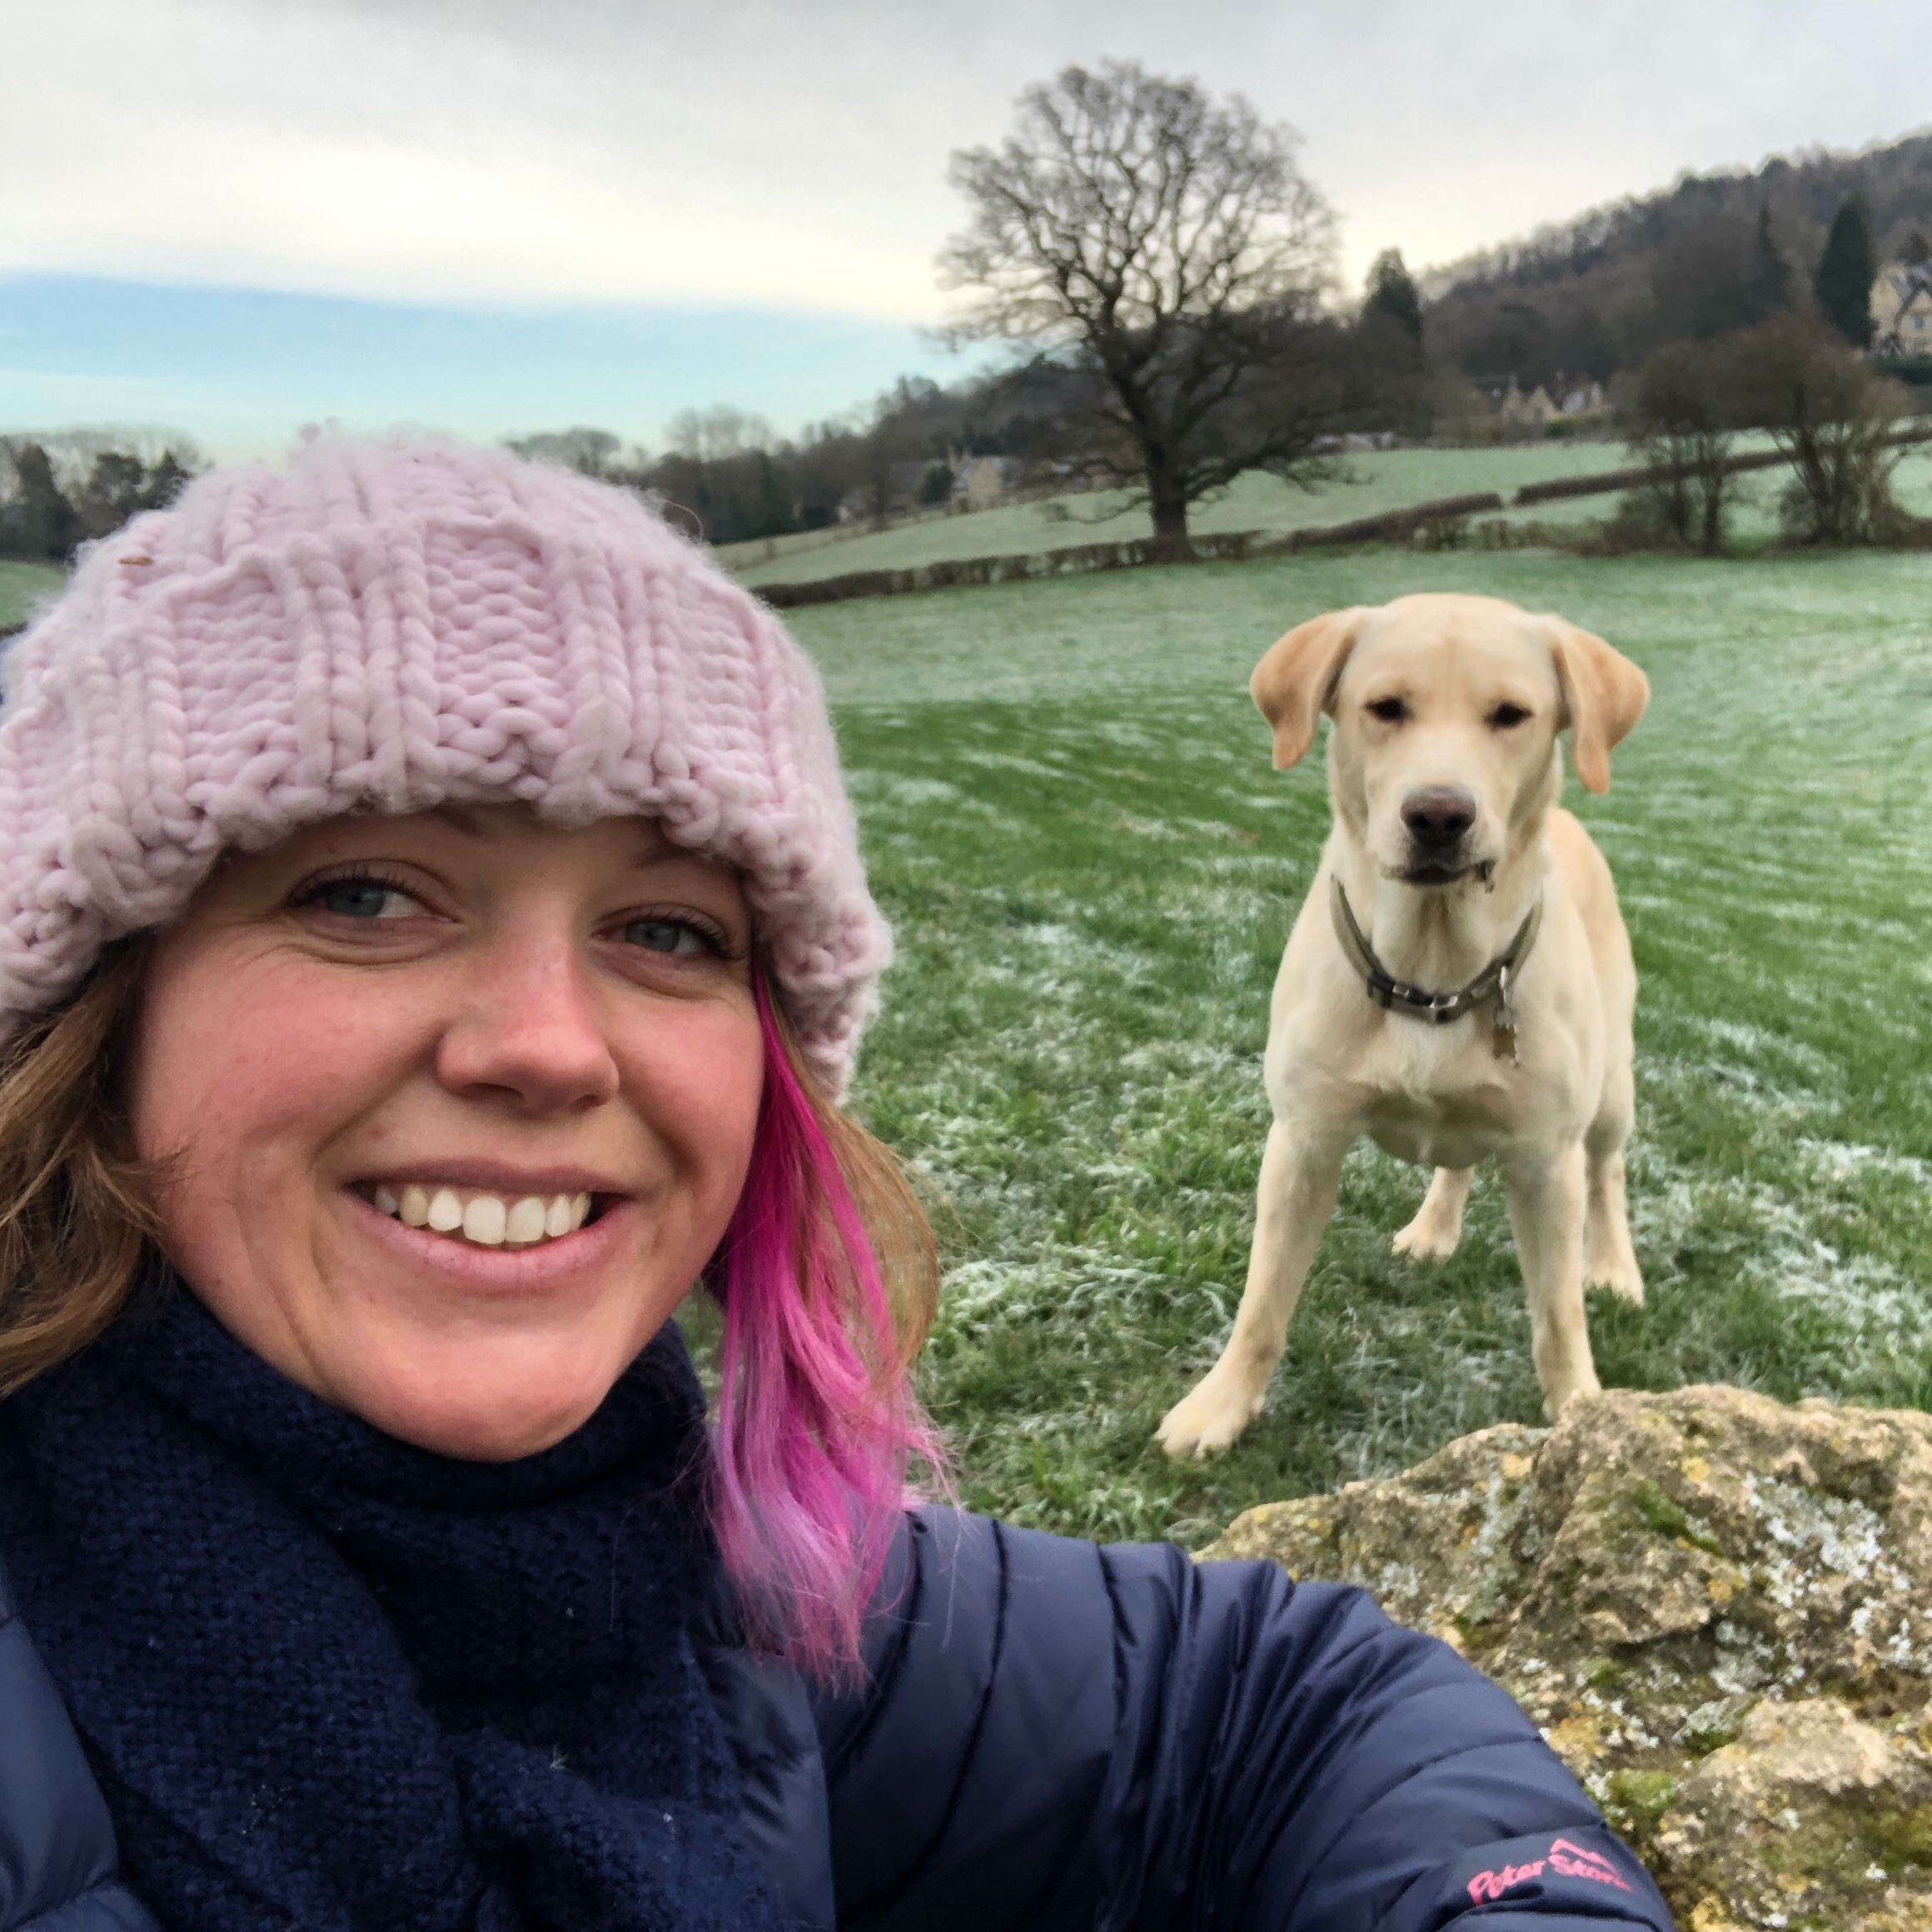 An unedited photo of me in the frost with a pink hat on looking at the camera and smiling with Hendrix our labrador behind me also looking at the camera.